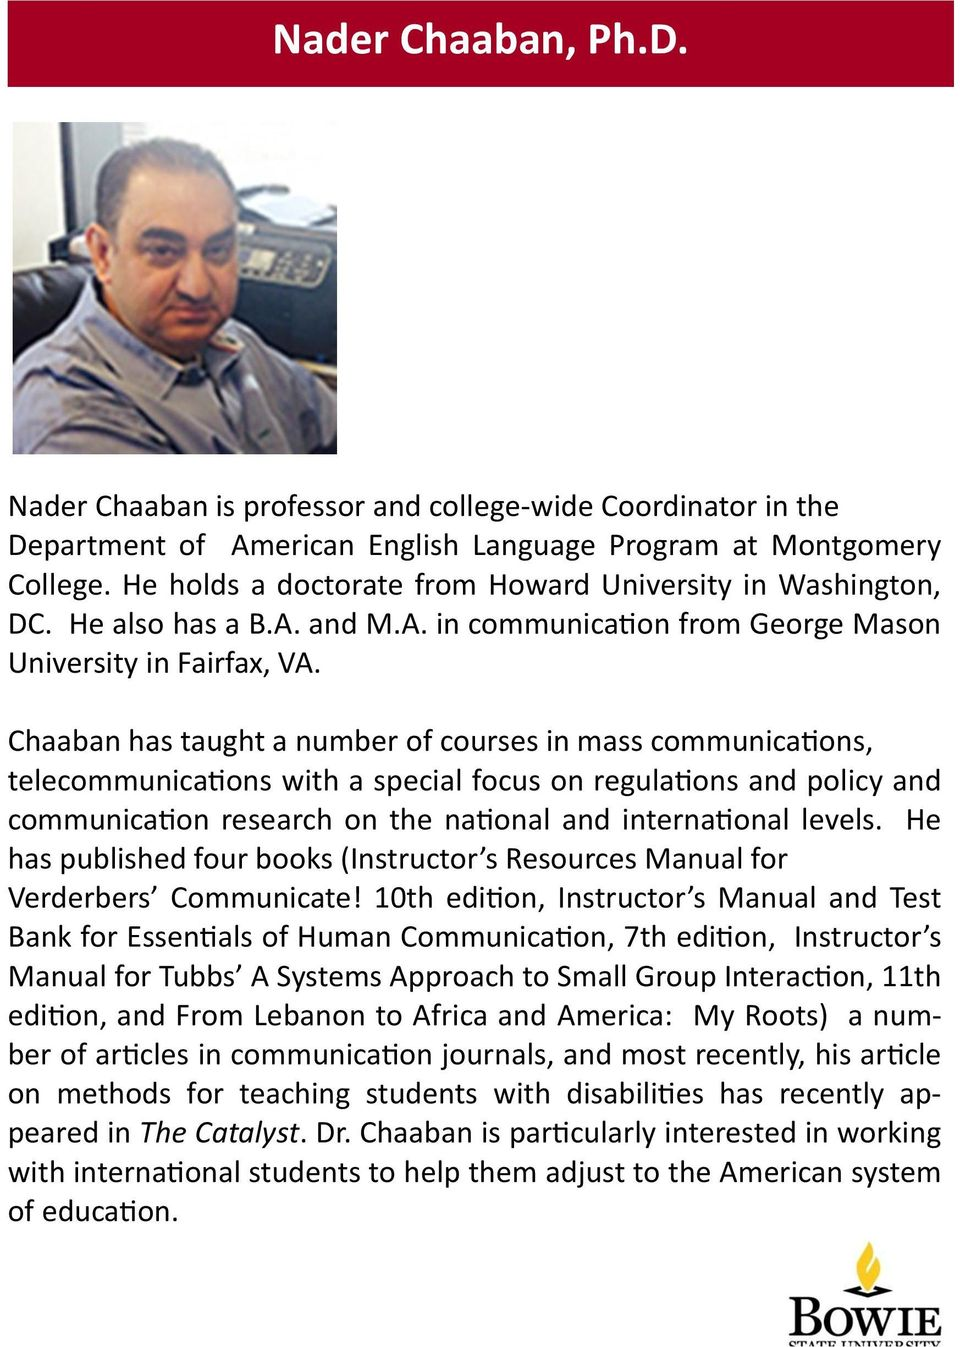 Chaaban has taught a number of courses in mass communications, telecommunications with a special focus on regulations and policy and communication research on the national and international levels.